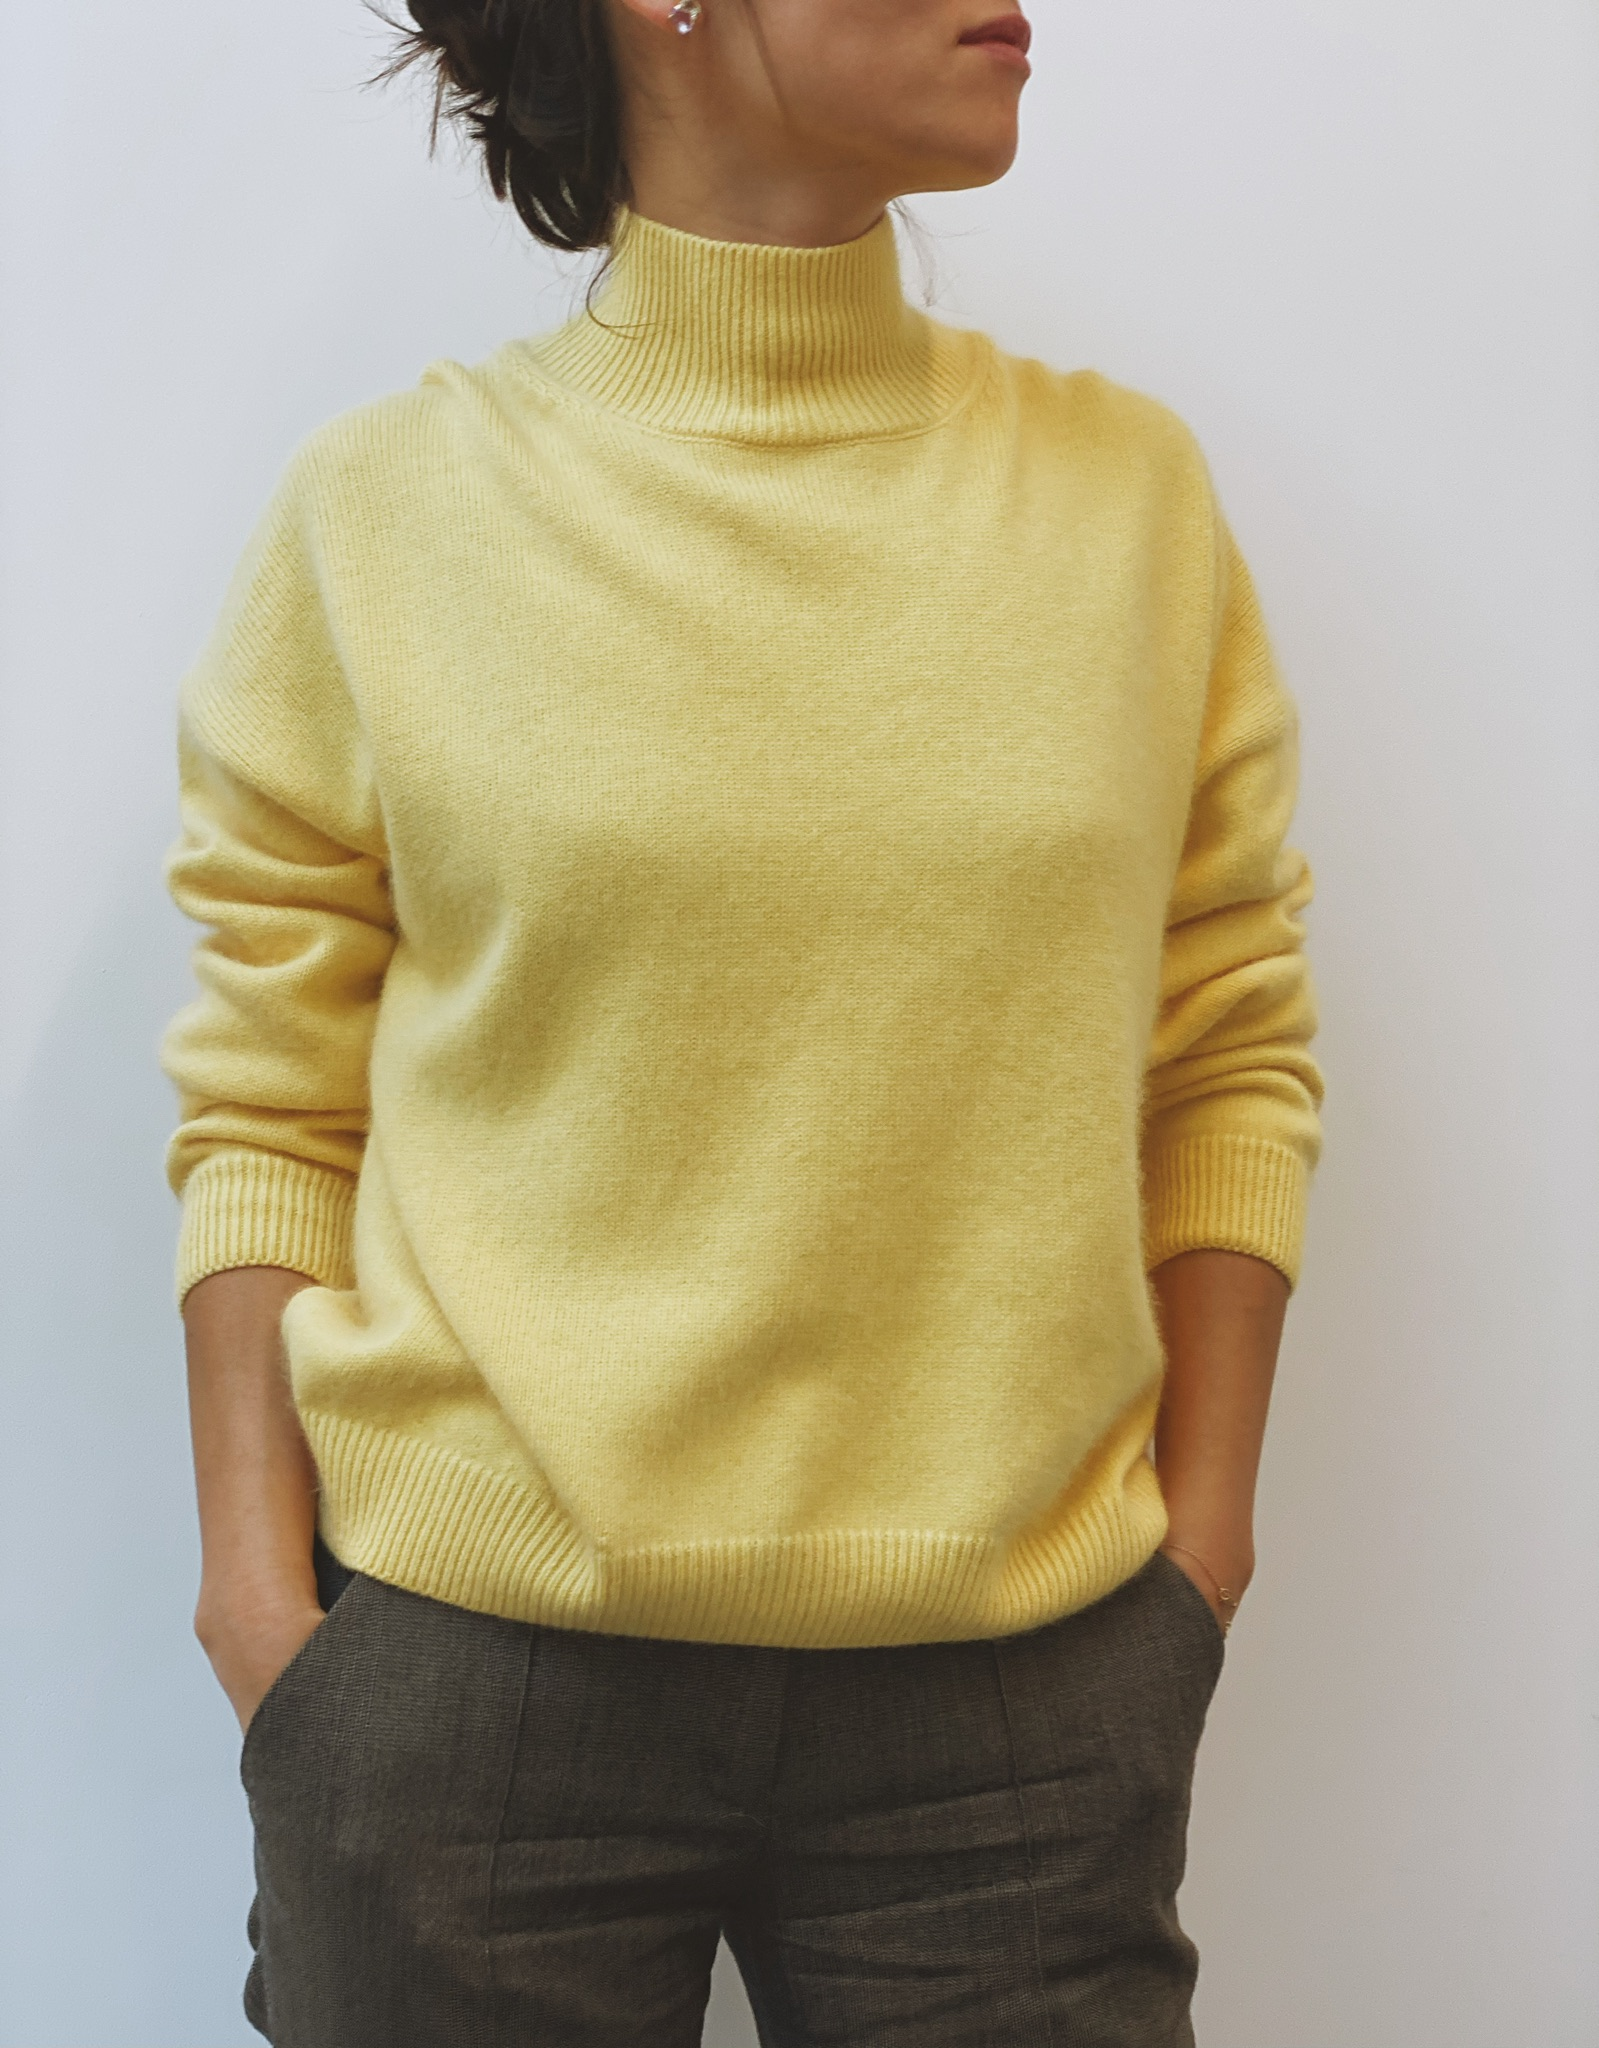 Lilly Cashmere Jumper - Yellow by Curated Crowd Collective on curated-crowd.com